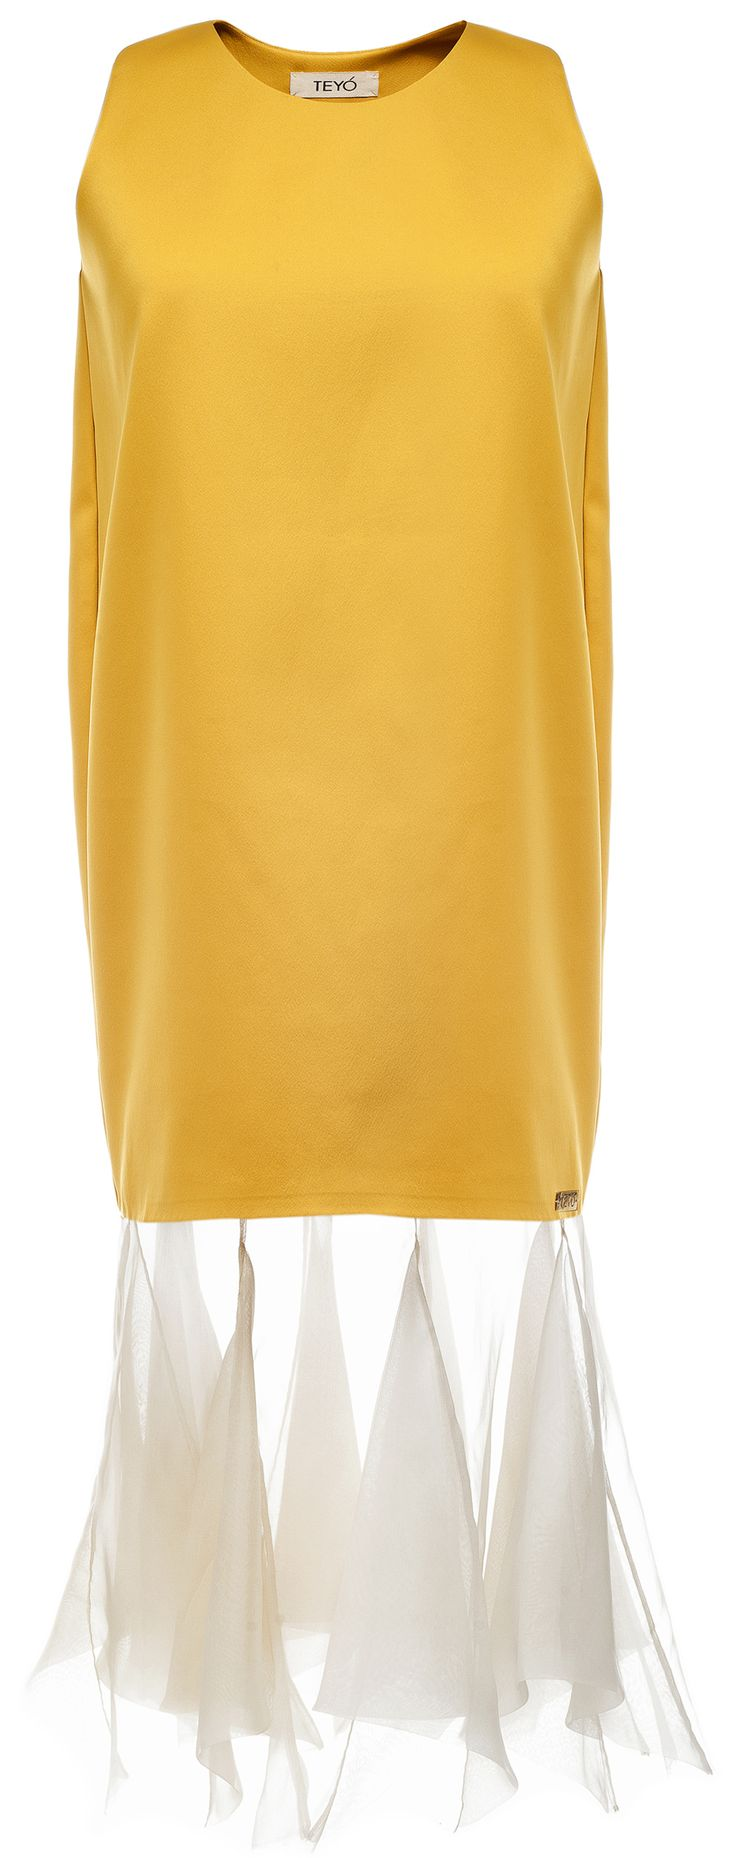 MORE is LOVE | Teyo - Yellow Solidaster Dress - Dresses